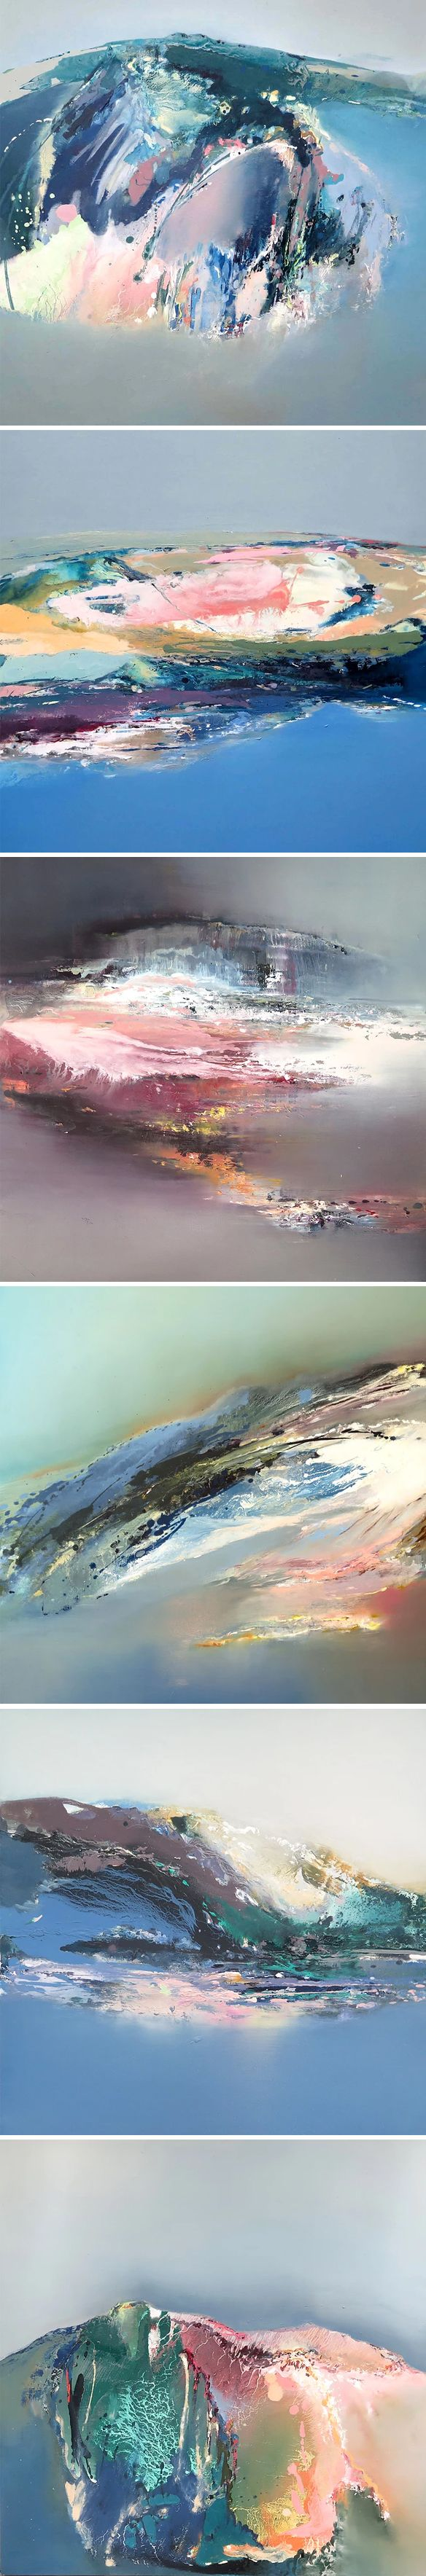 abstract landscapes by elaine jones